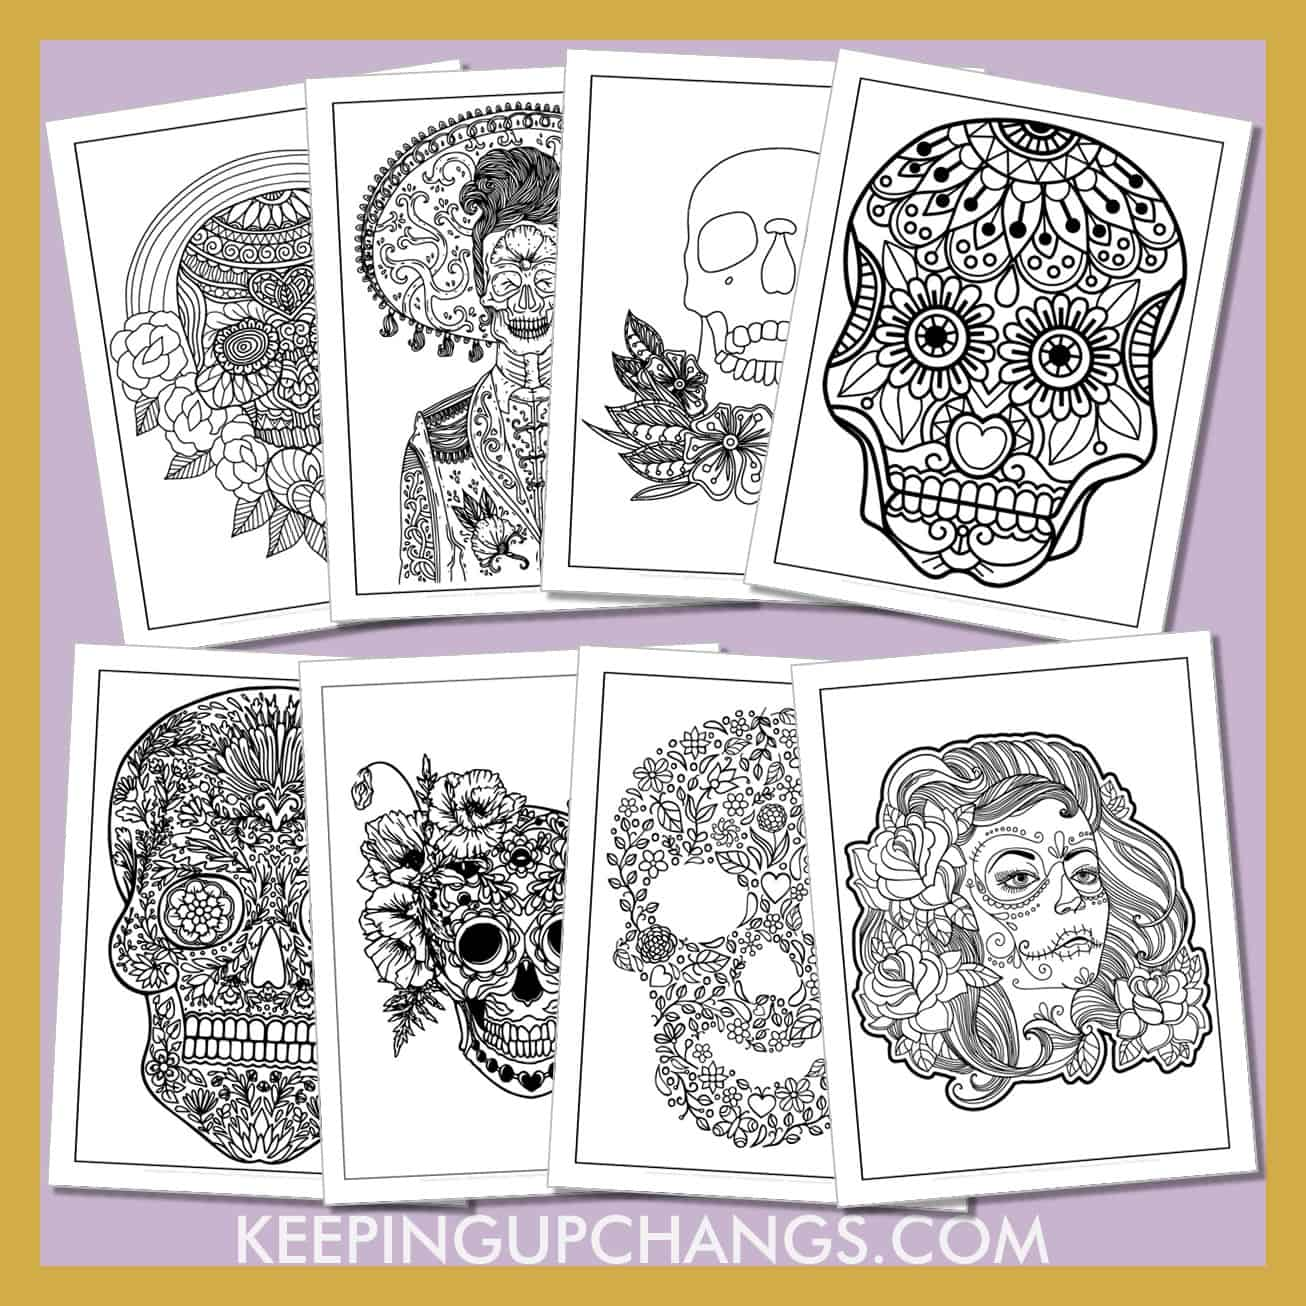 day of the dead sugar skull colouring sheets including female, male, death masks, roses, mandalas, flowers.